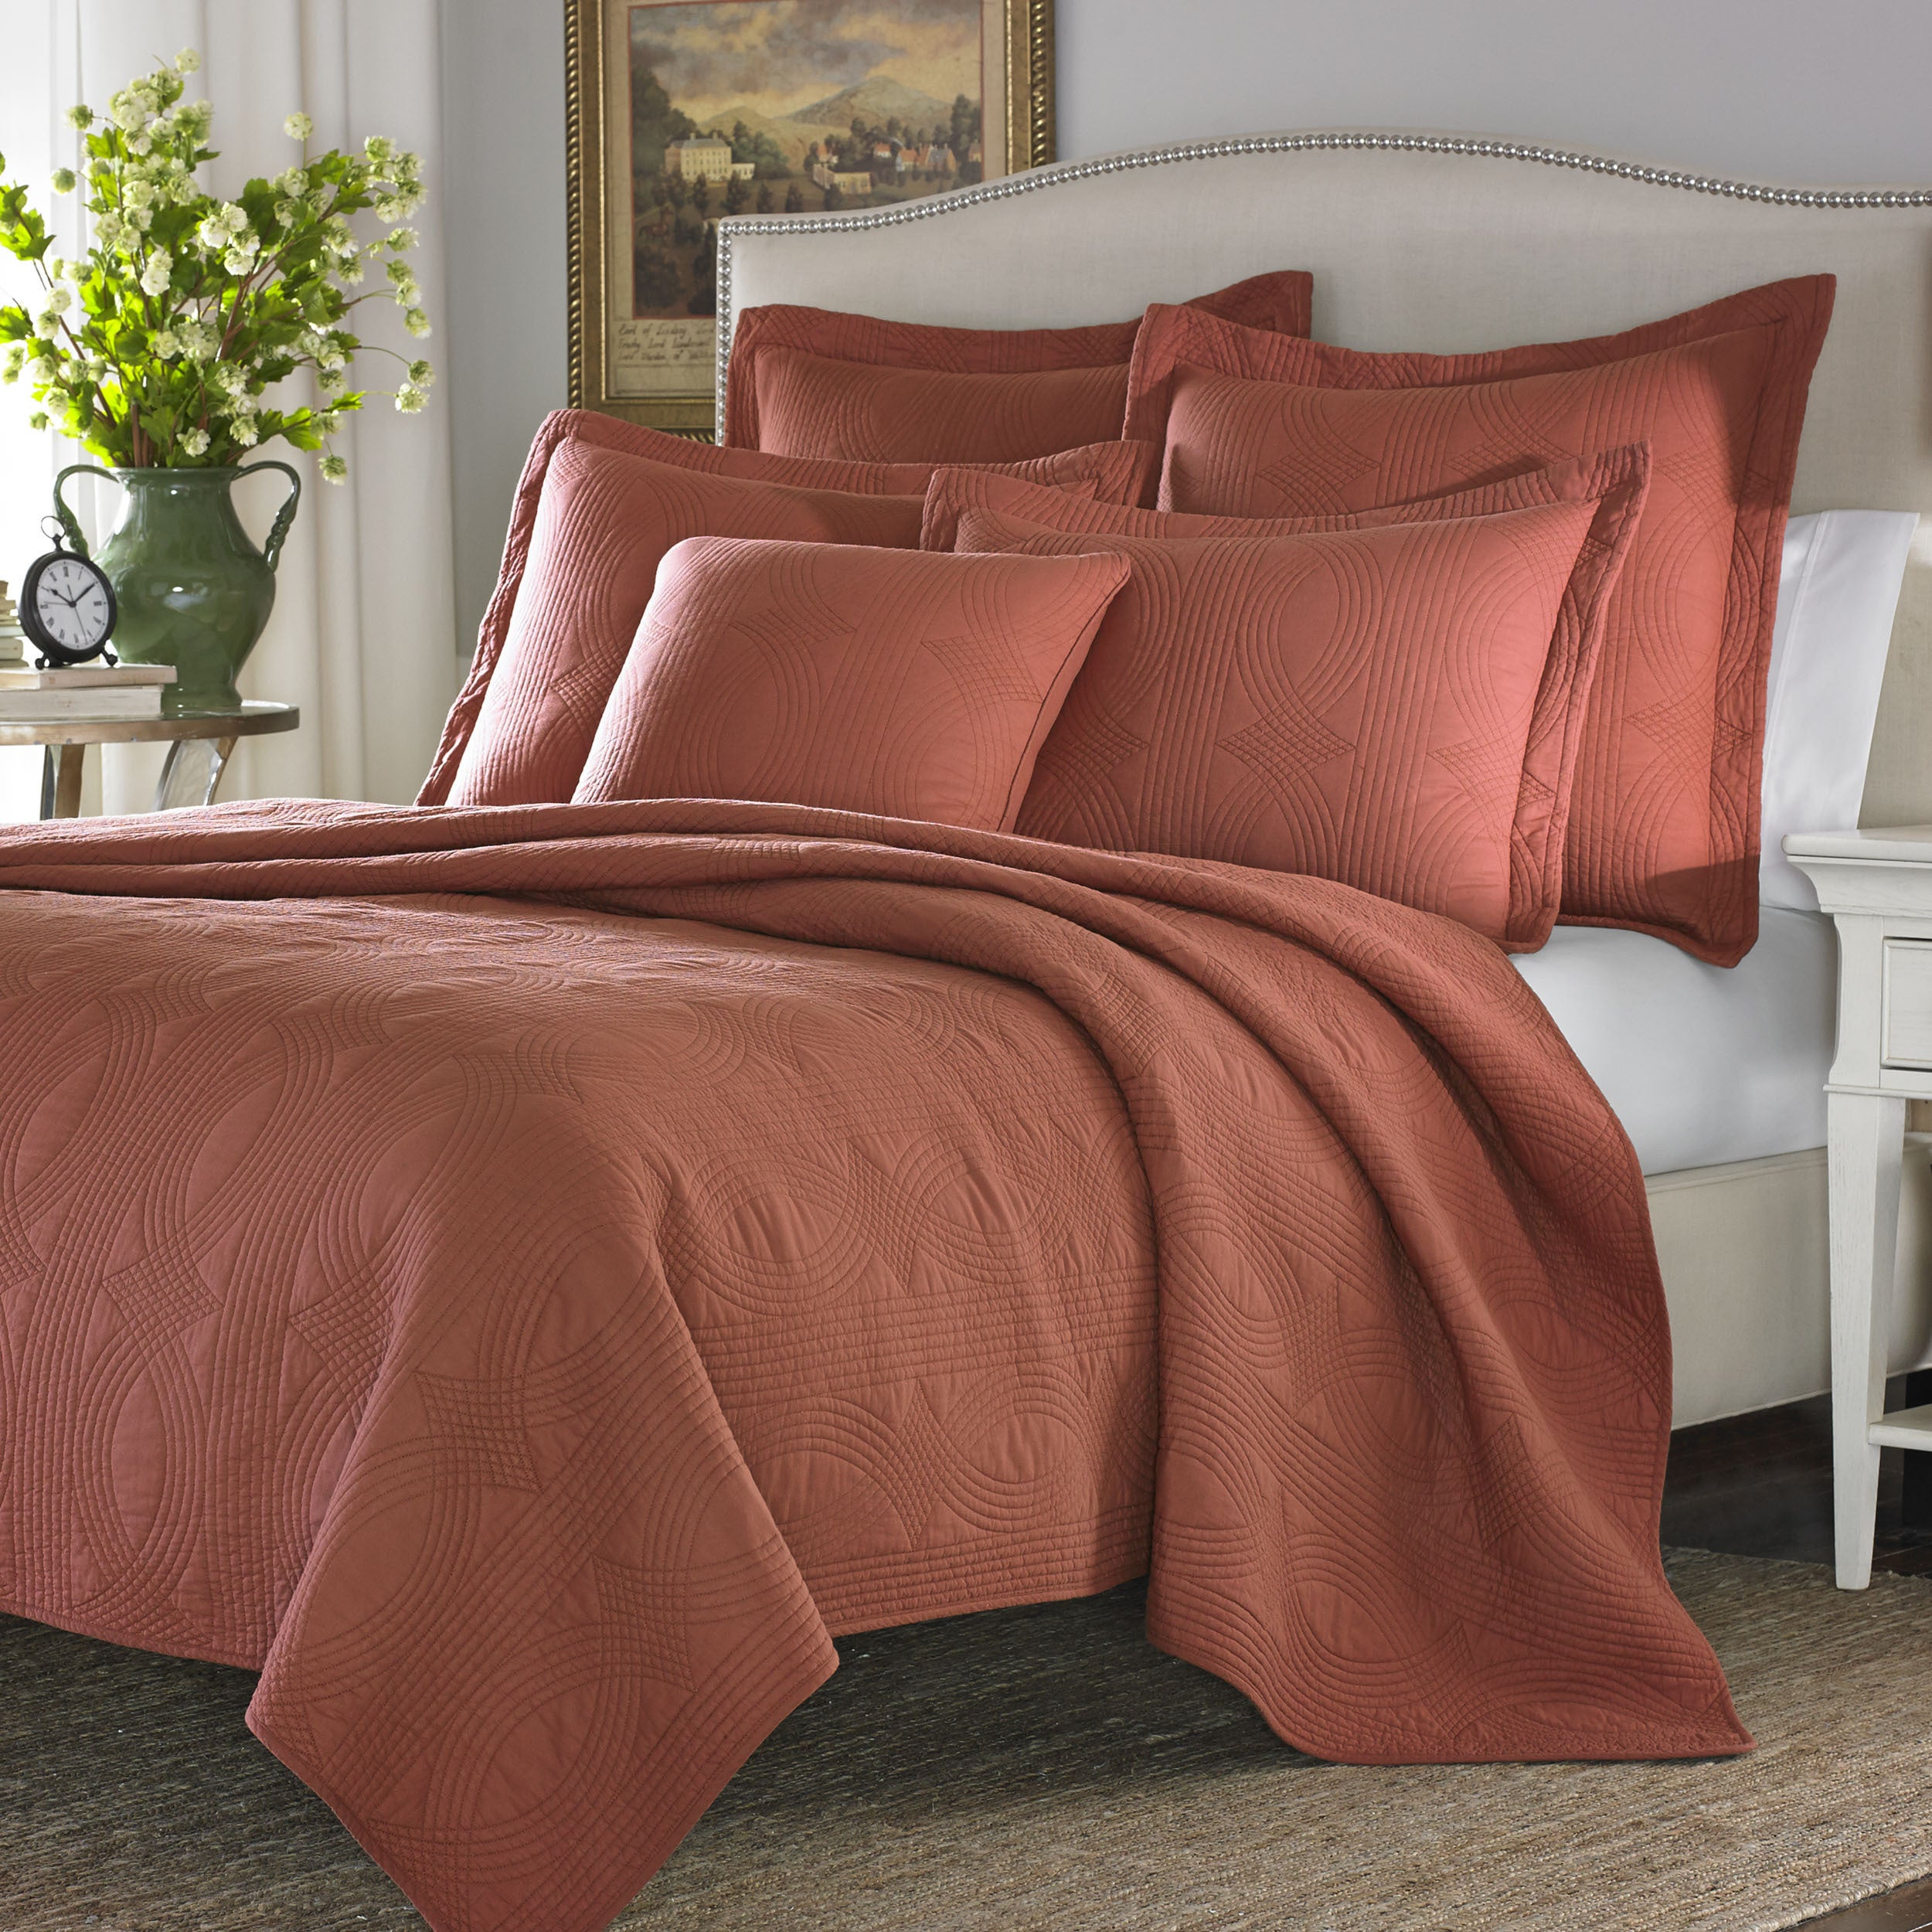 to a cotton set cottage bedding your cover ceylon add bedroom sham stone touch of euro elegance sateen with regal pin separates duvet this